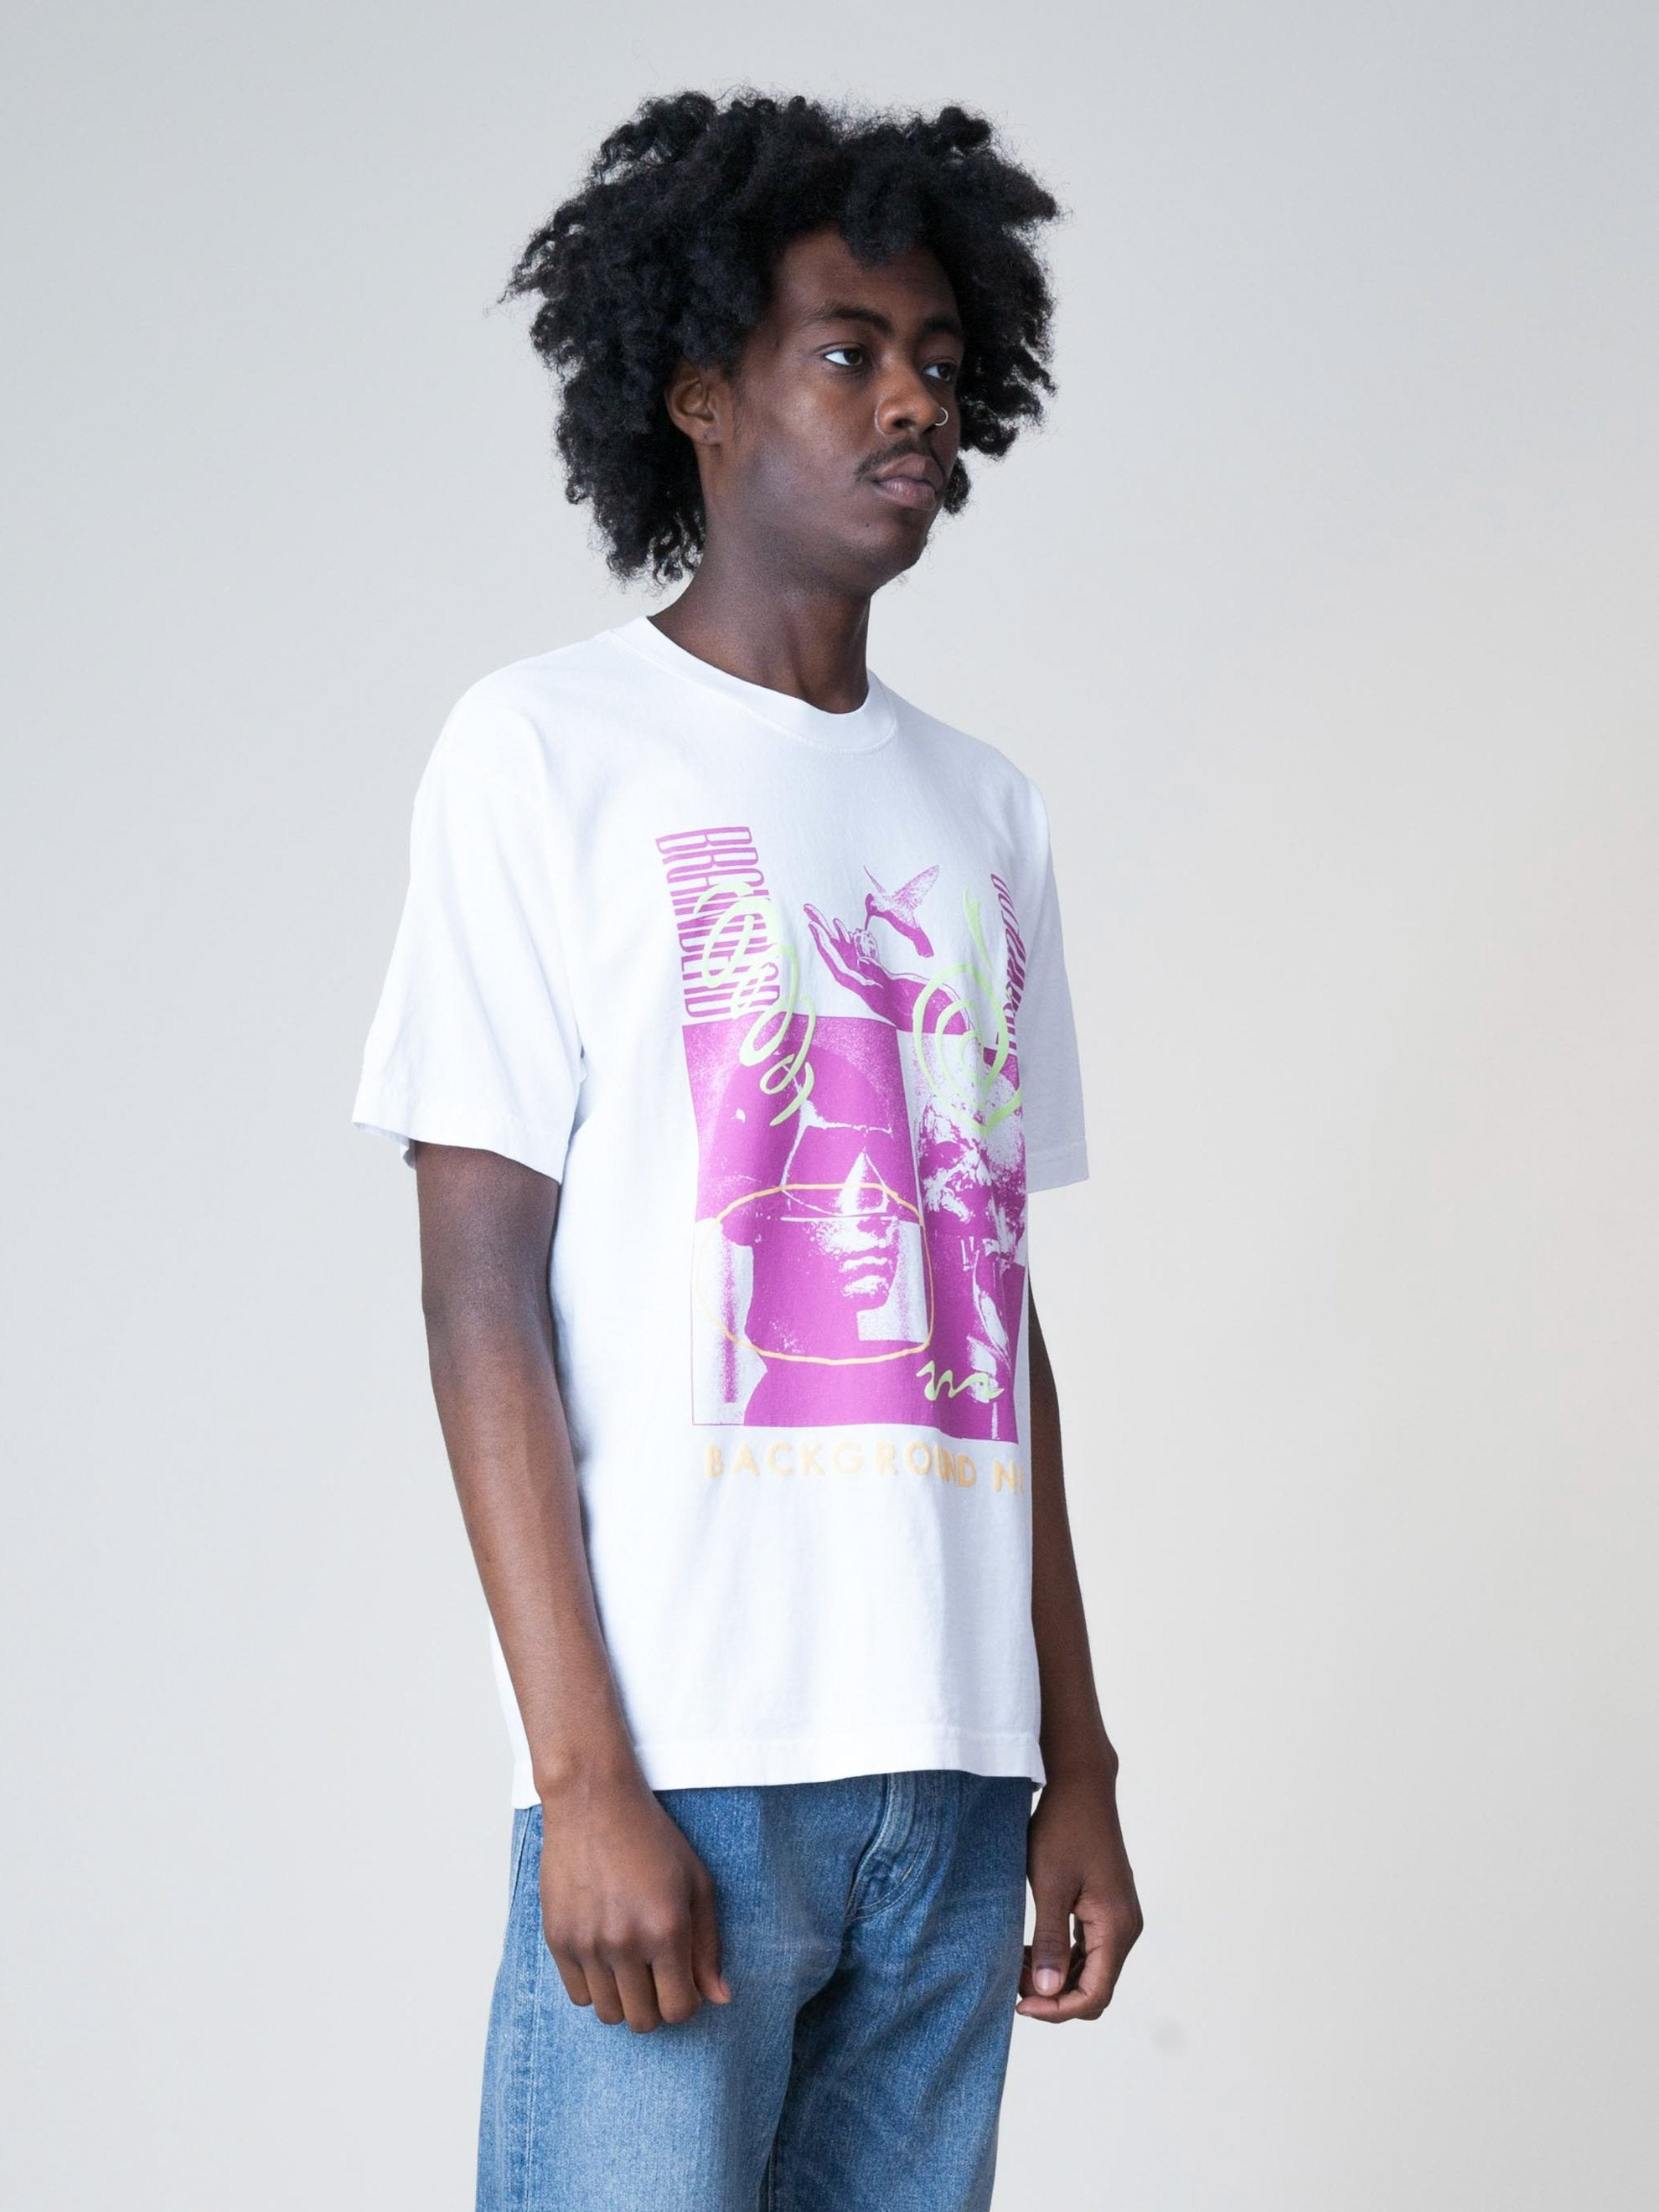 Background Noise S/S T-Shirt